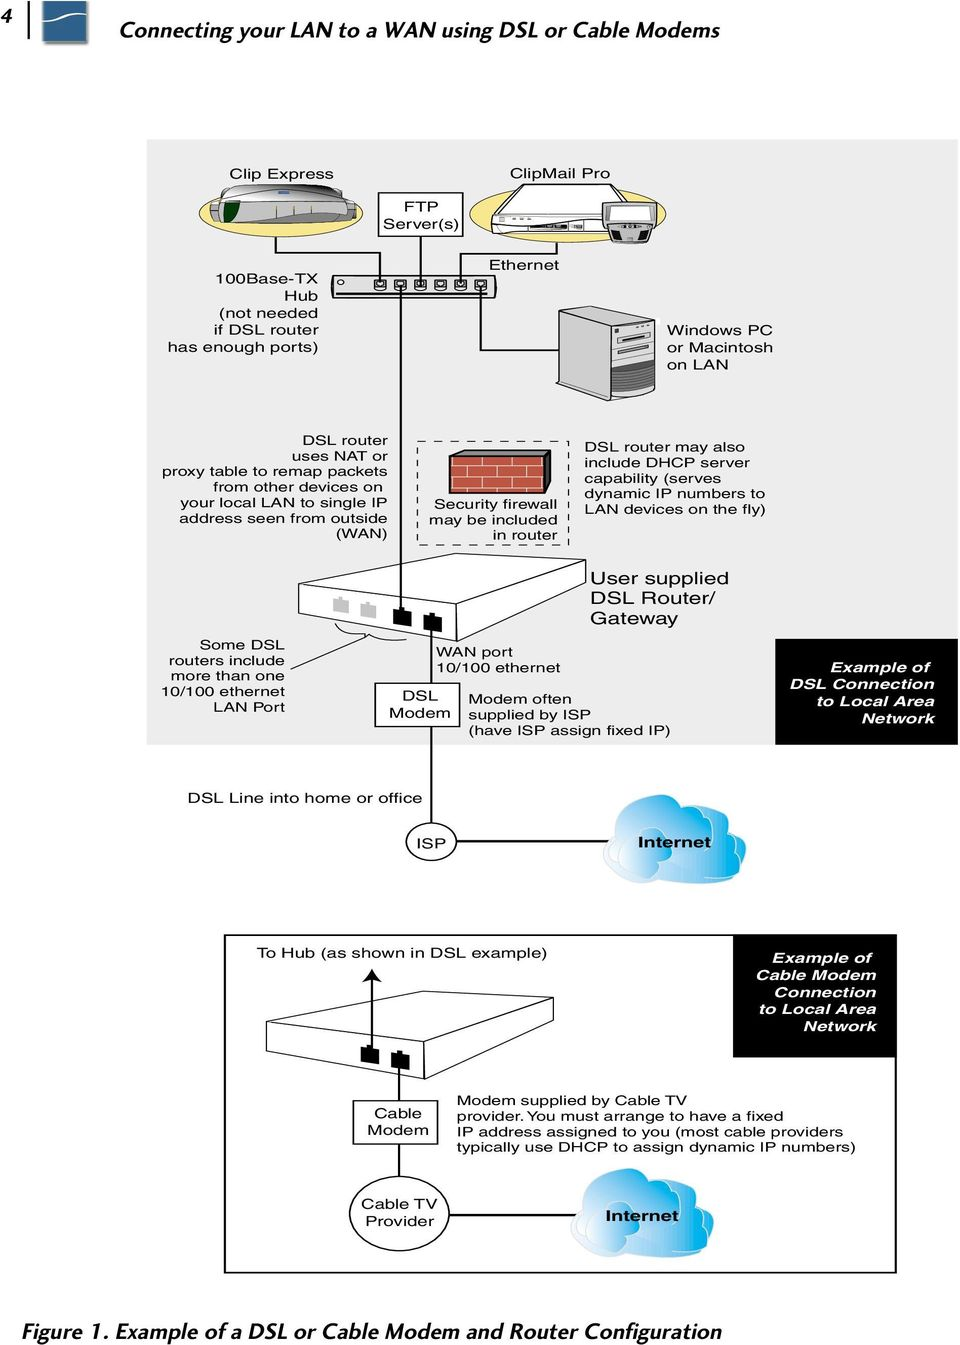 medium resolution of may be included in router dsl router may also include dhcp server capability serves dynamic